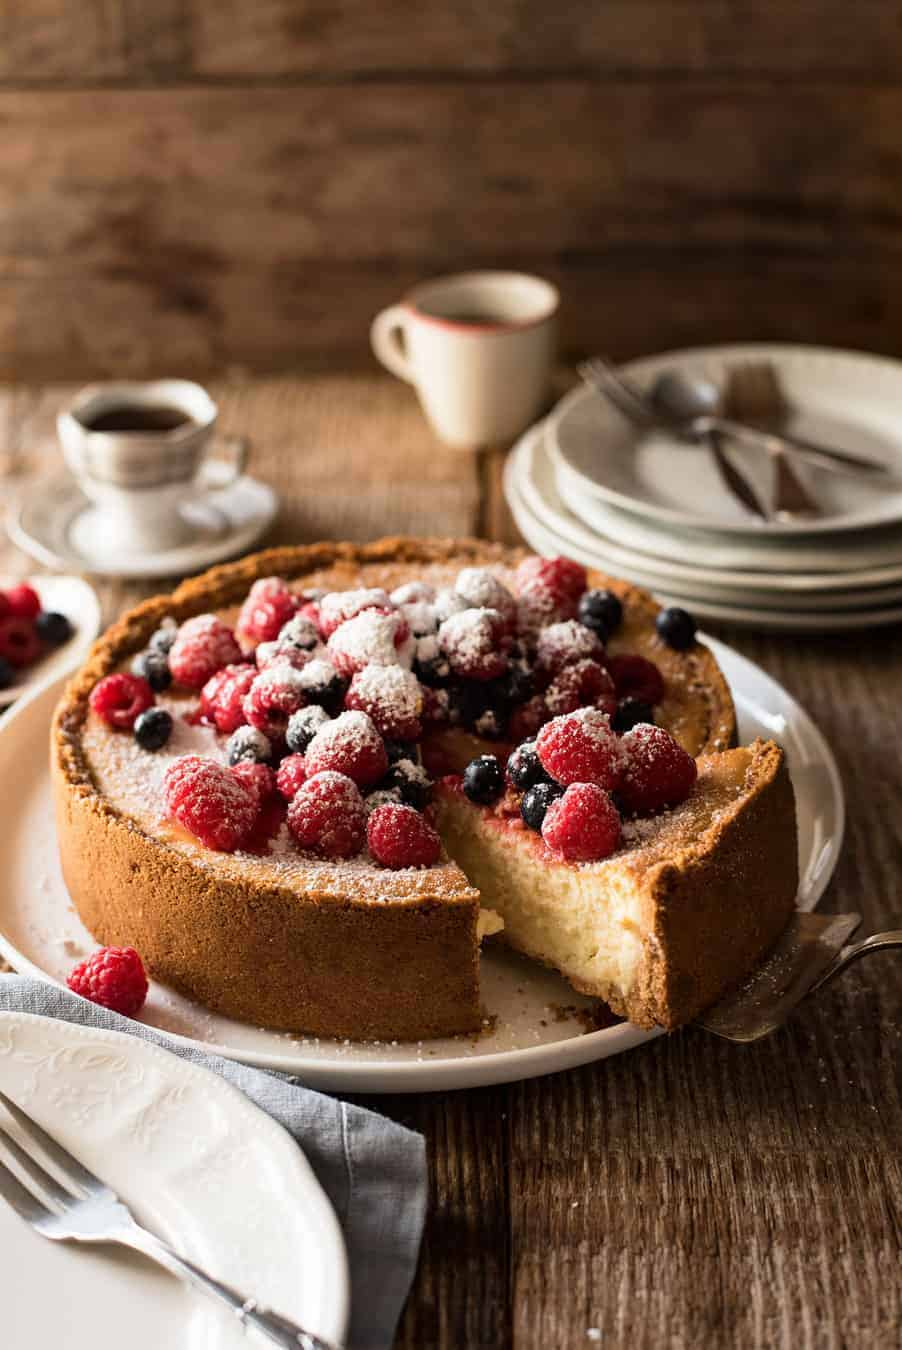 Easy Classic Baked Cheesecake